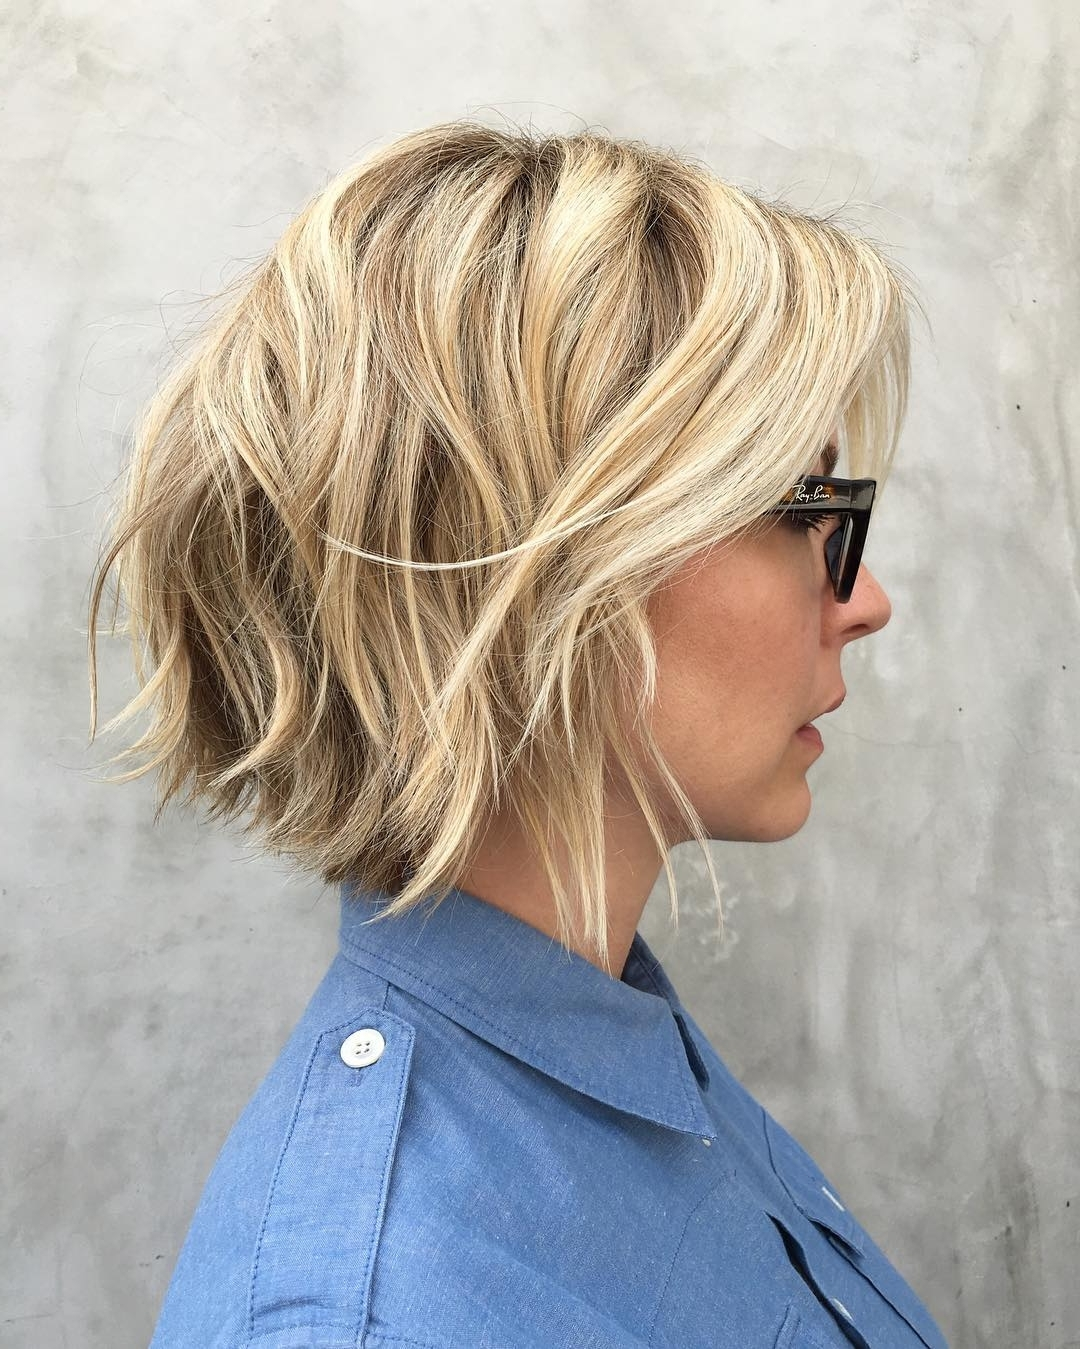 30 Trendiest Shaggy Bob Haircuts Of The Season Within Most Recent Subtle Dirty Blonde Angled Bob Hairstyles (View 2 of 20)